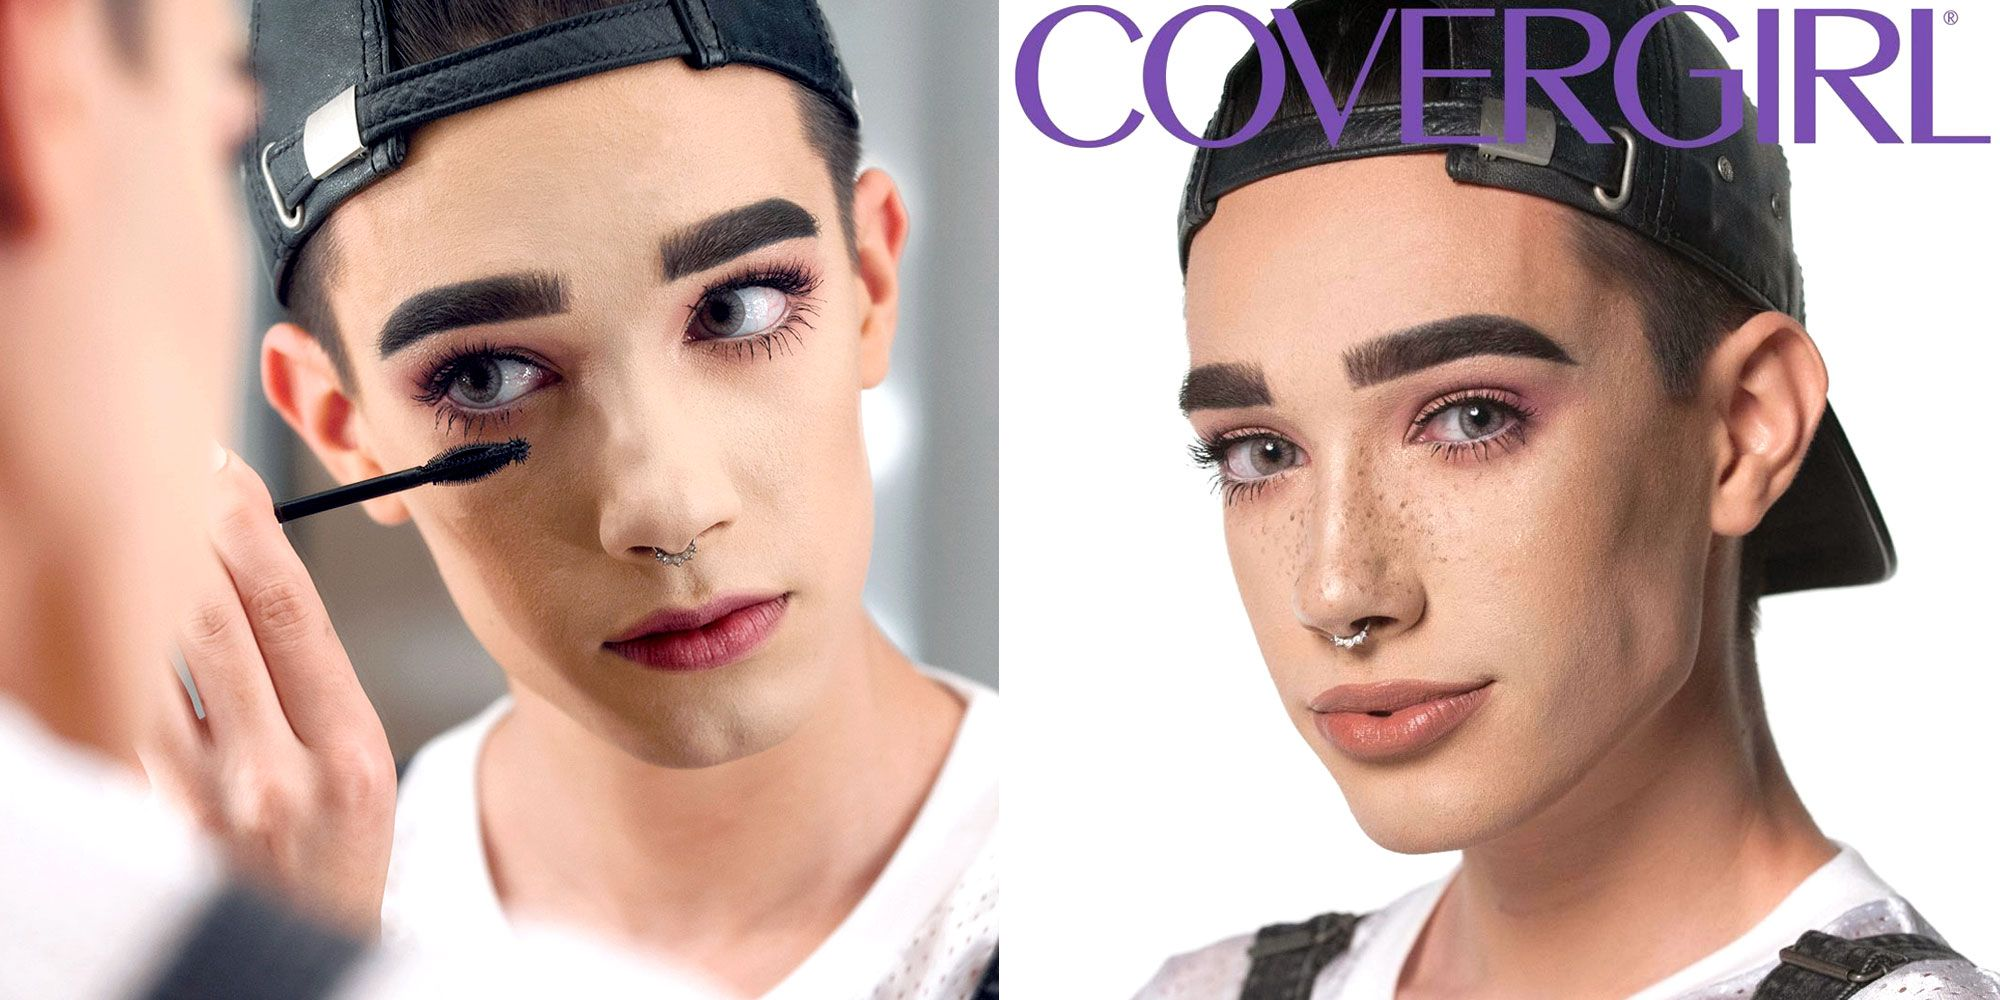 CoverGirl Announces Its First Male CoverGirl Spokesmodel